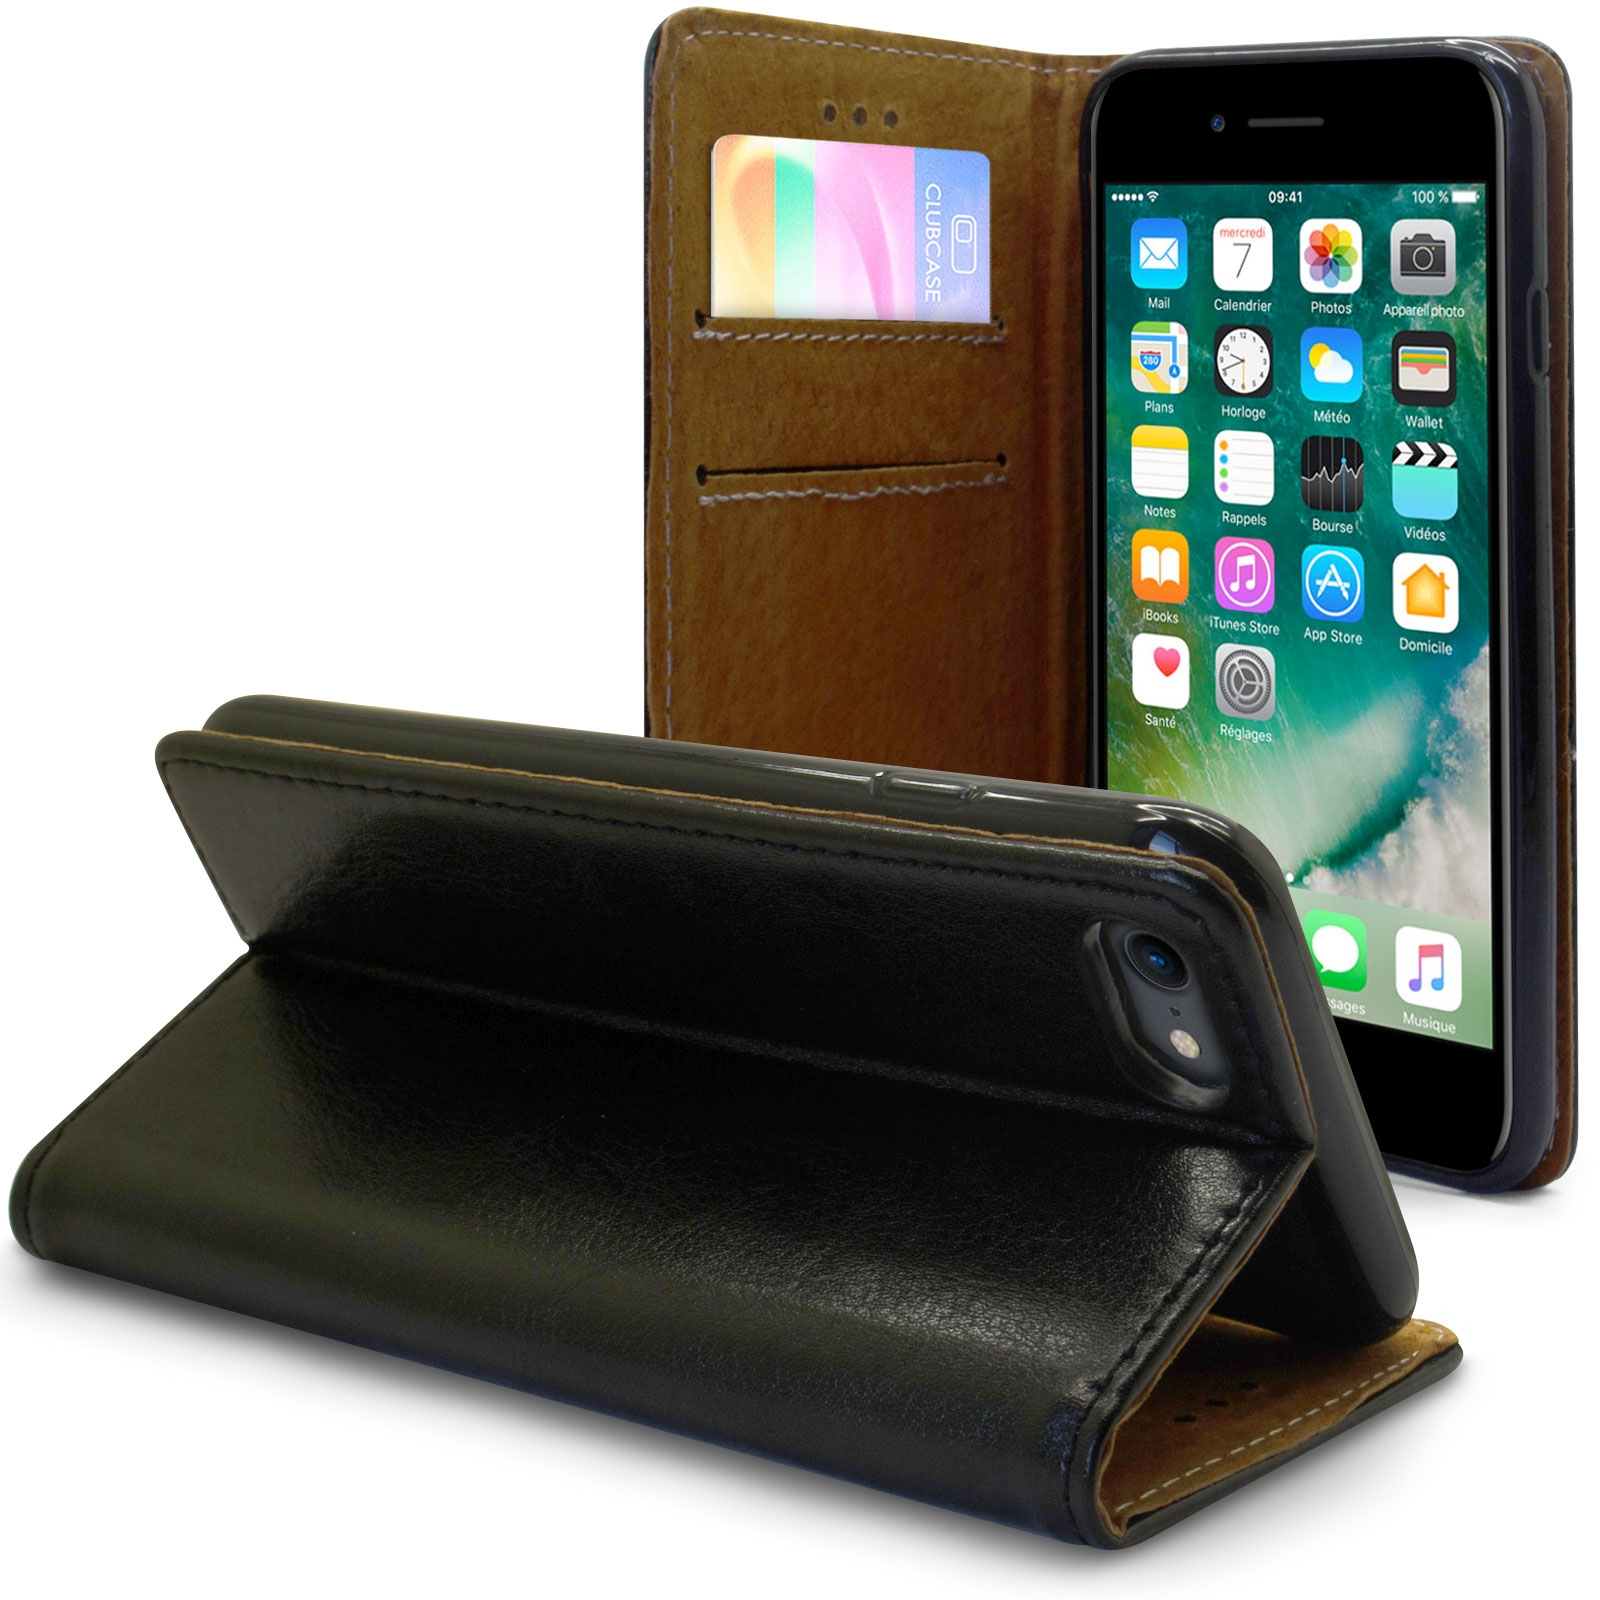 Coque folio stand souple apple iphone 7 4 7 cuir for Housse iphone 7 cuir